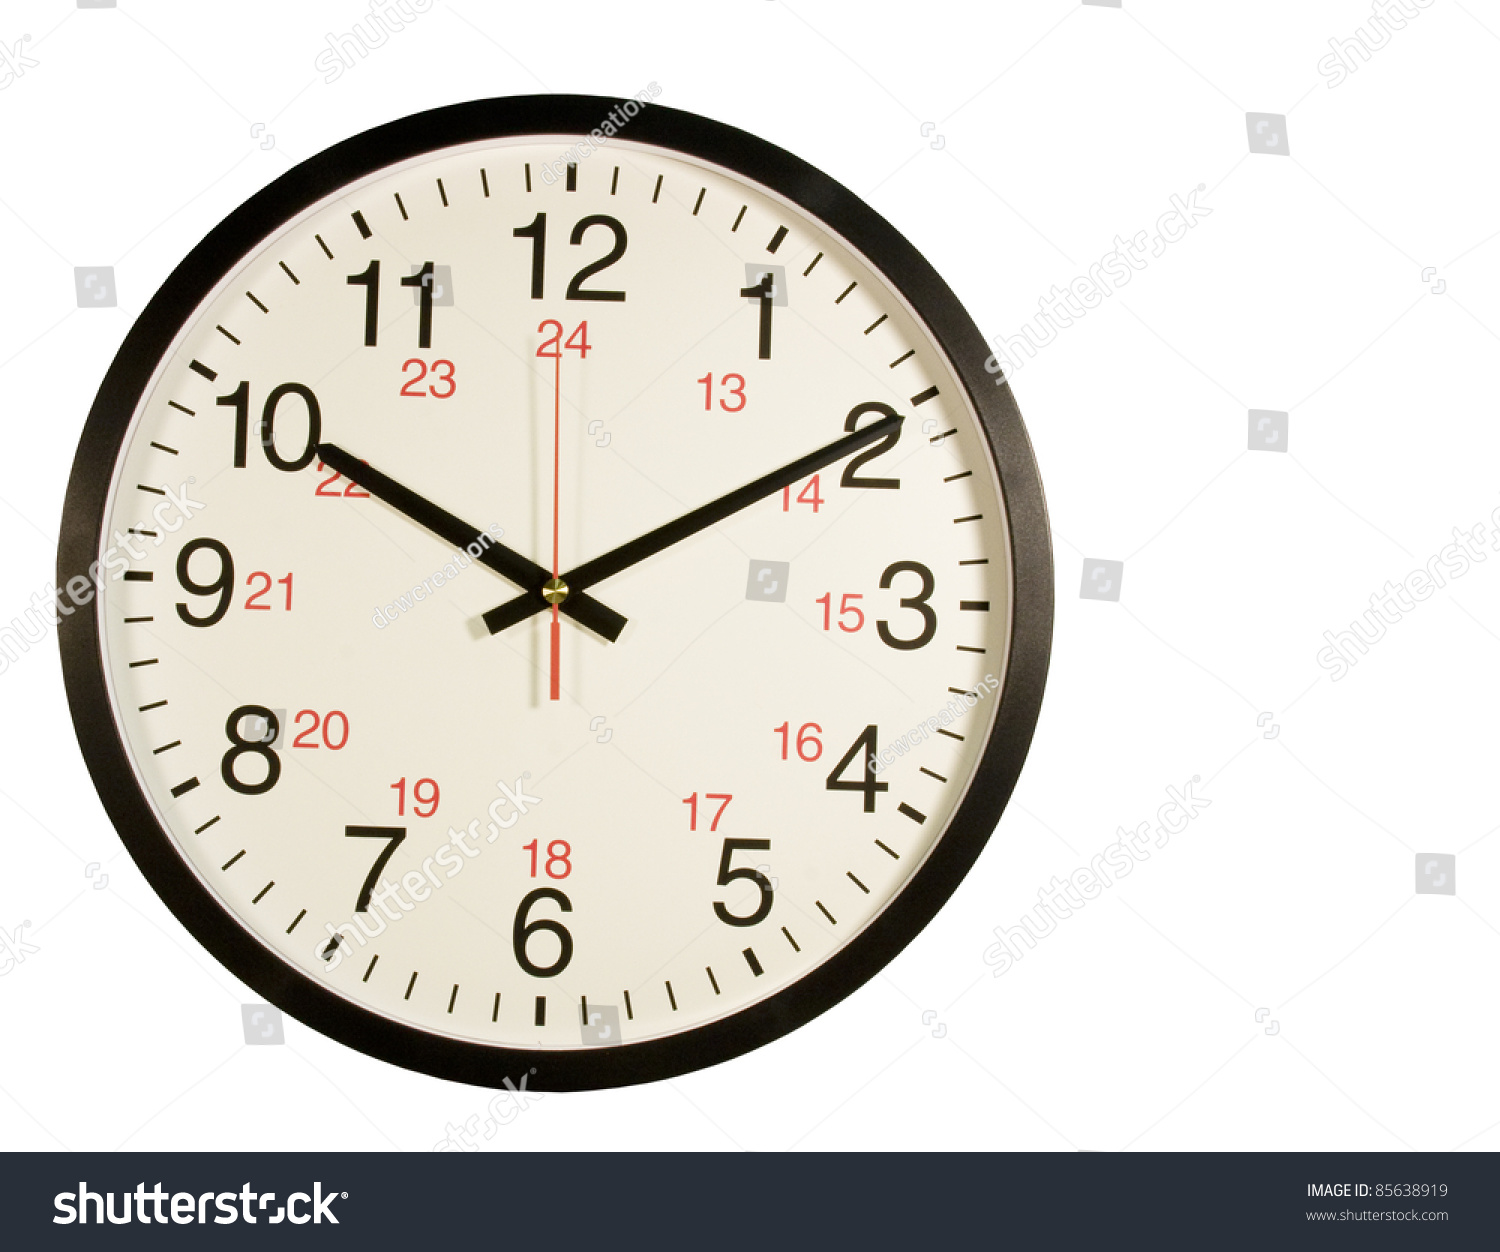 Round Clock With Regular And Military Time On The Face